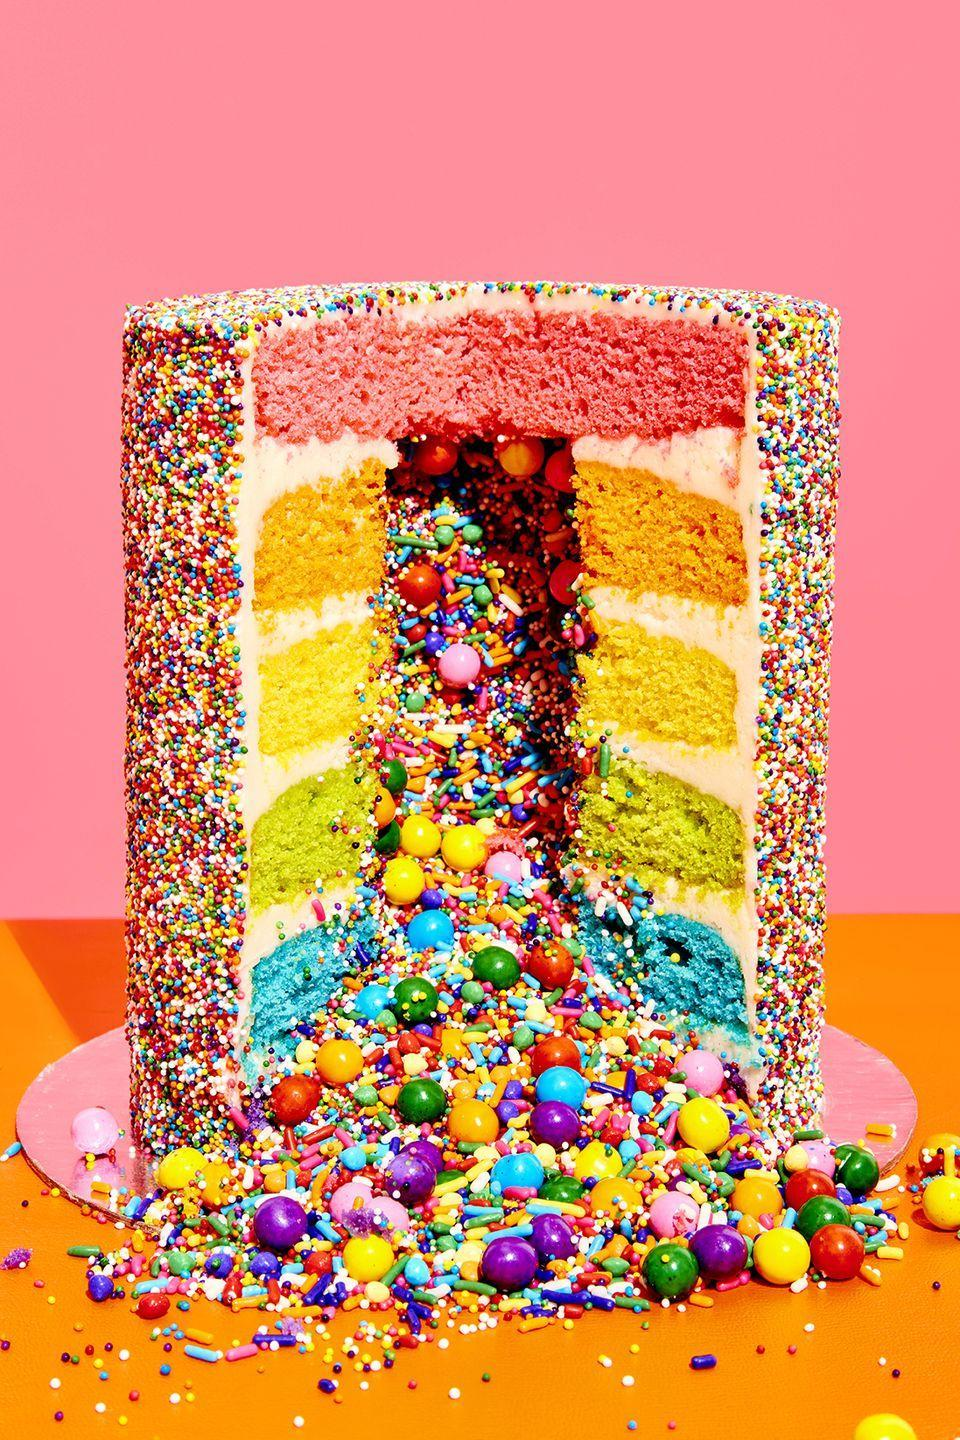 """<p>Flour Shop's Amirah Kassem's signature masterpiece: six layers of colorful cake hiding a tunnel of sprinkles that spill out in glorious fashion when it's sliced. You can make your own wowza work of art at home with the <a href=""""https://go.redirectingat.com?id=74968X1596630&url=https%3A%2F%2Fwww.williams-sonoma.com%2Fproducts%2Fflour-shop-surprise-cake-kit%2F&sref=https%3A%2F%2Fwww.womansday.com%2Ffood-recipes%2Fg36845030%2Fbirthday-cake-recipes%2F"""" rel=""""nofollow noopener"""" target=""""_blank"""" data-ylk=""""slk:Flour Shop Rainbow Explosion Cake Kit"""" class=""""link rapid-noclick-resp"""">Flour Shop Rainbow Explosion Cake Kit</a>, available at Williams-Sonoma.</p>"""